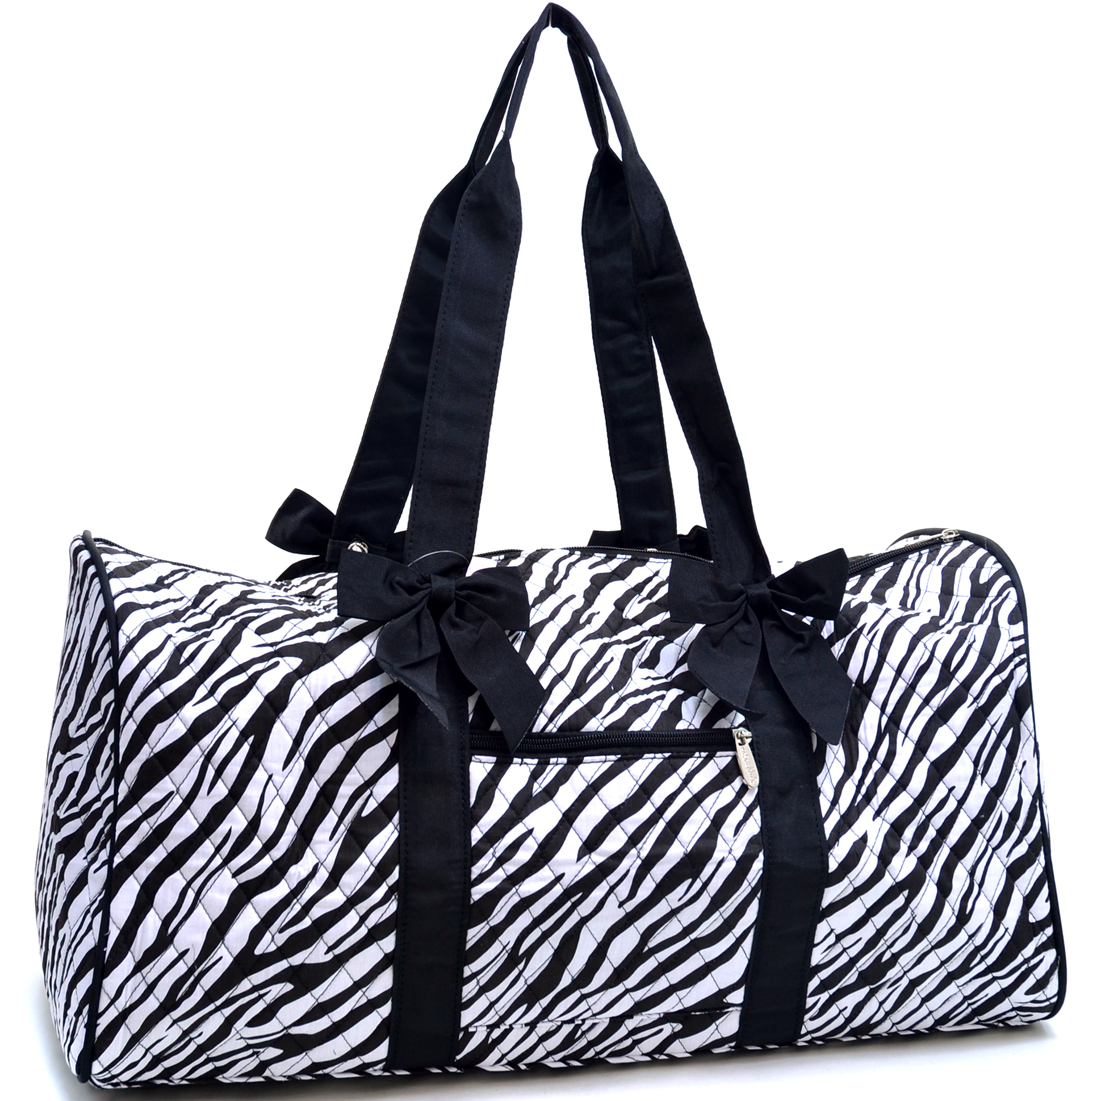 Rosen Blue® Large Quilted Duffle Bag with Bow Decor in Zebra Print